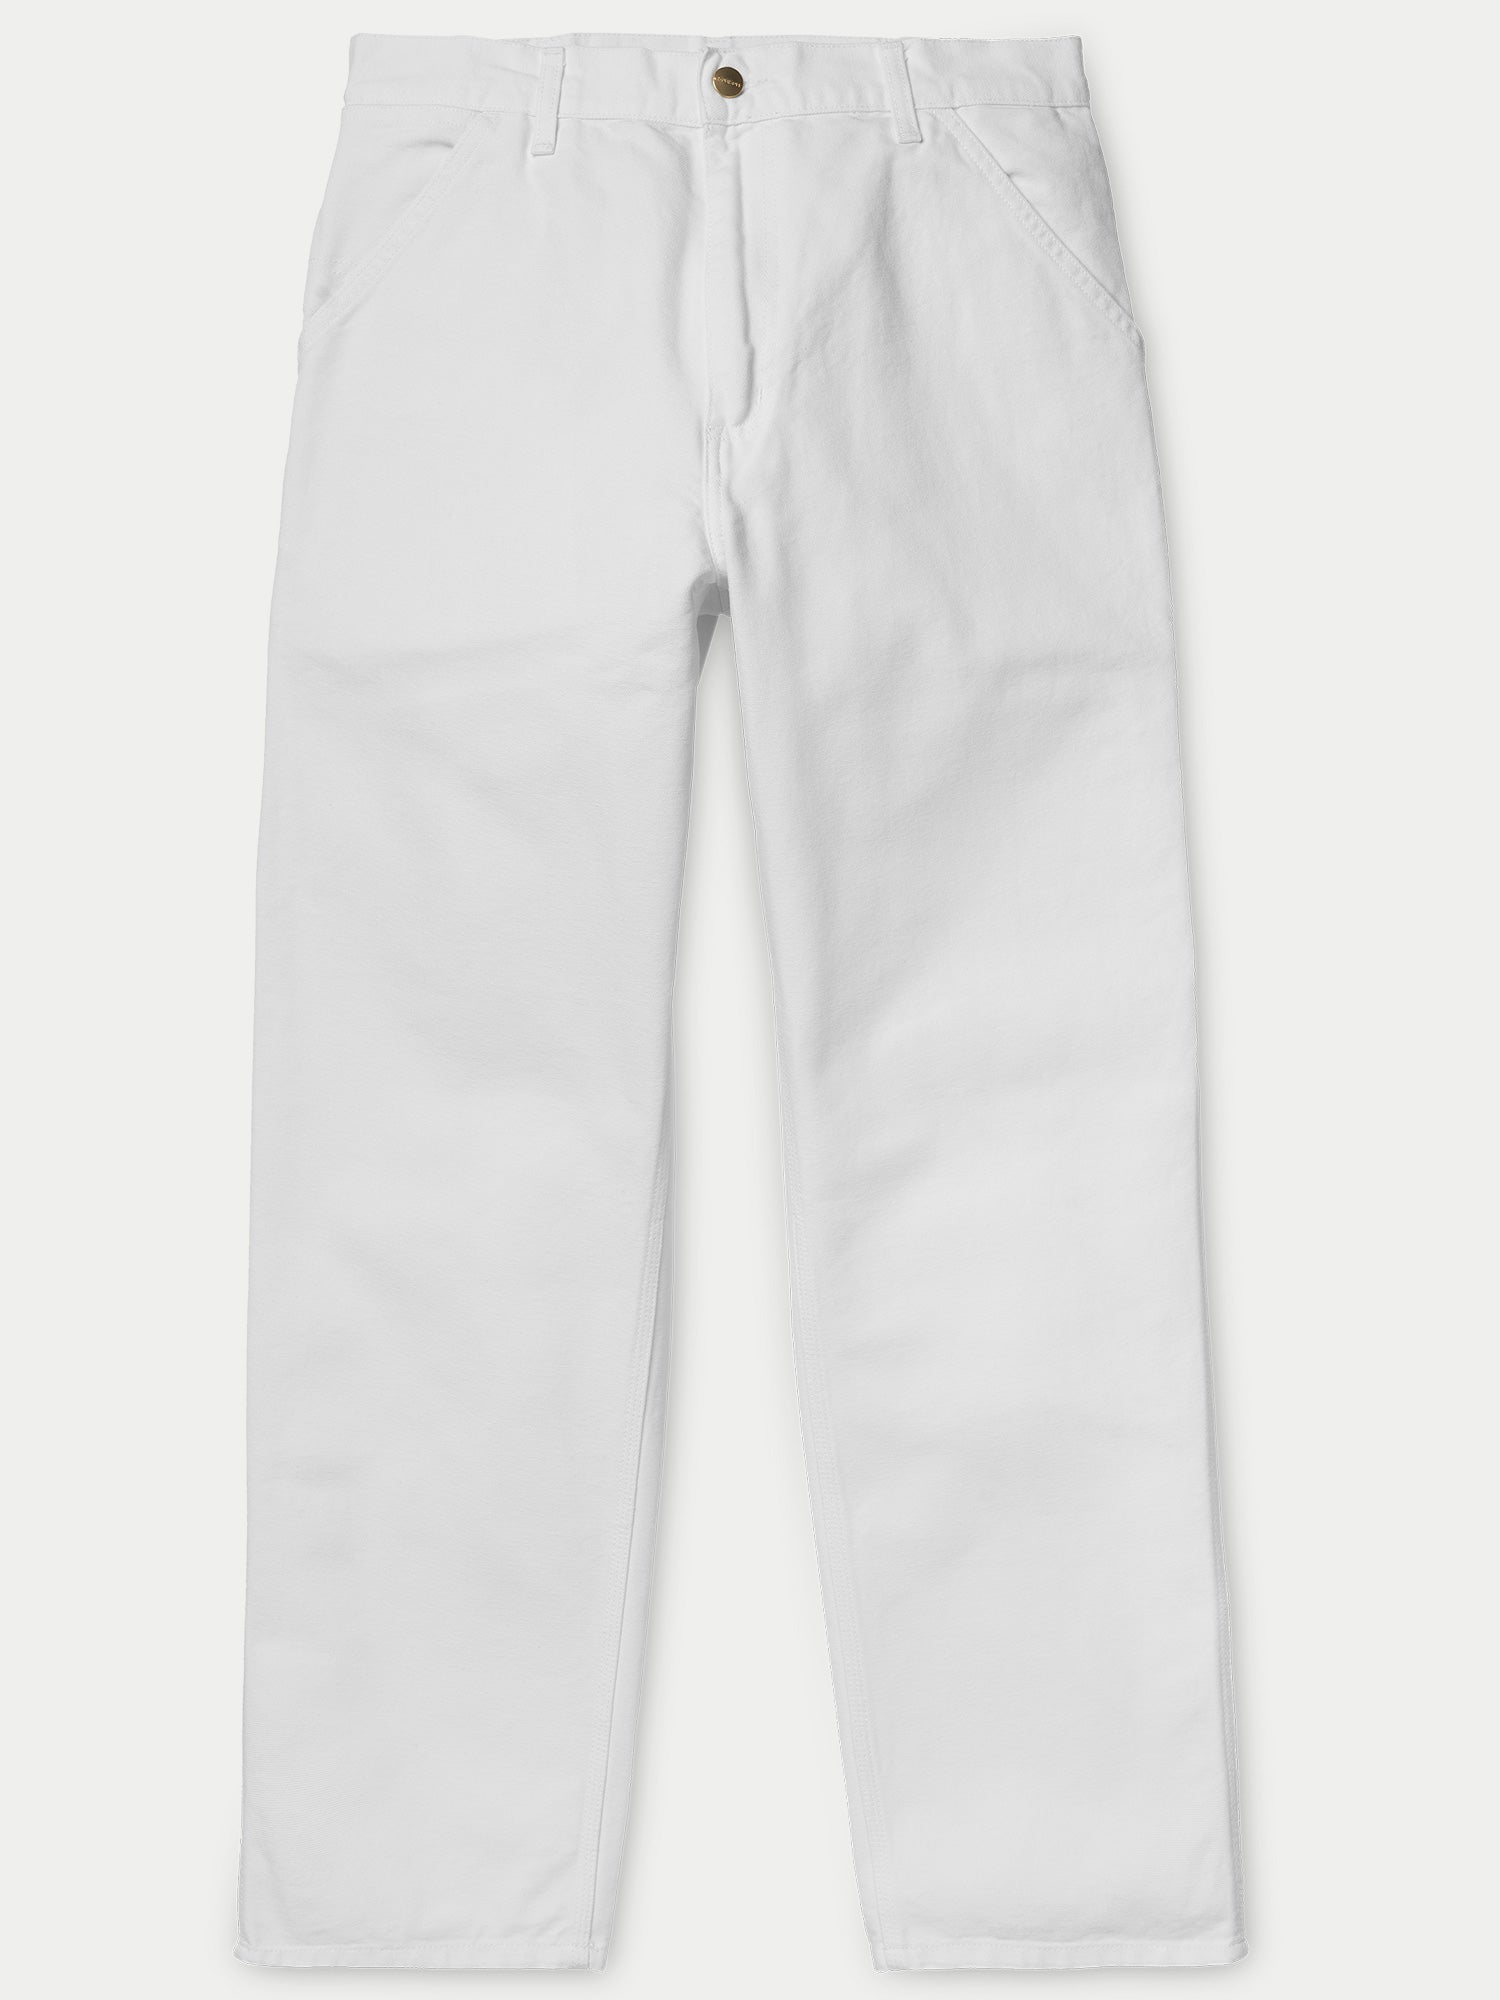 Carhartt Single Knee Pant (Wax Rinsed)